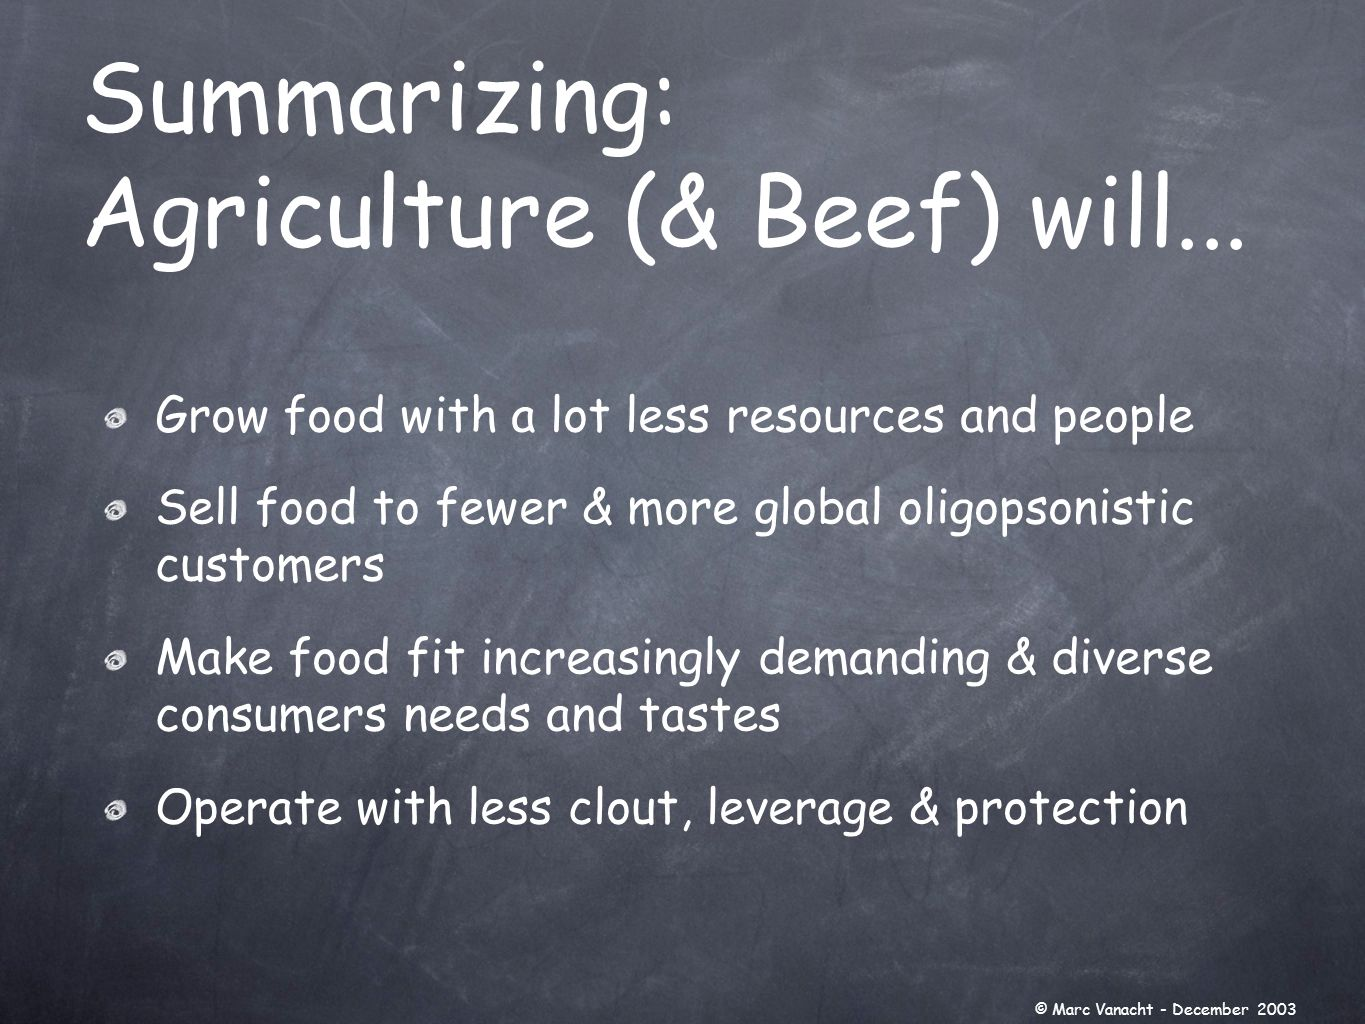 Grow food with a lot less resources and people Sell food to fewer & more global oligopsonistic customers Make food fit increasingly demanding & diverse consumers needs and tastes Operate with less clout, leverage & protection Summarizing: Agriculture (& Beef) will...